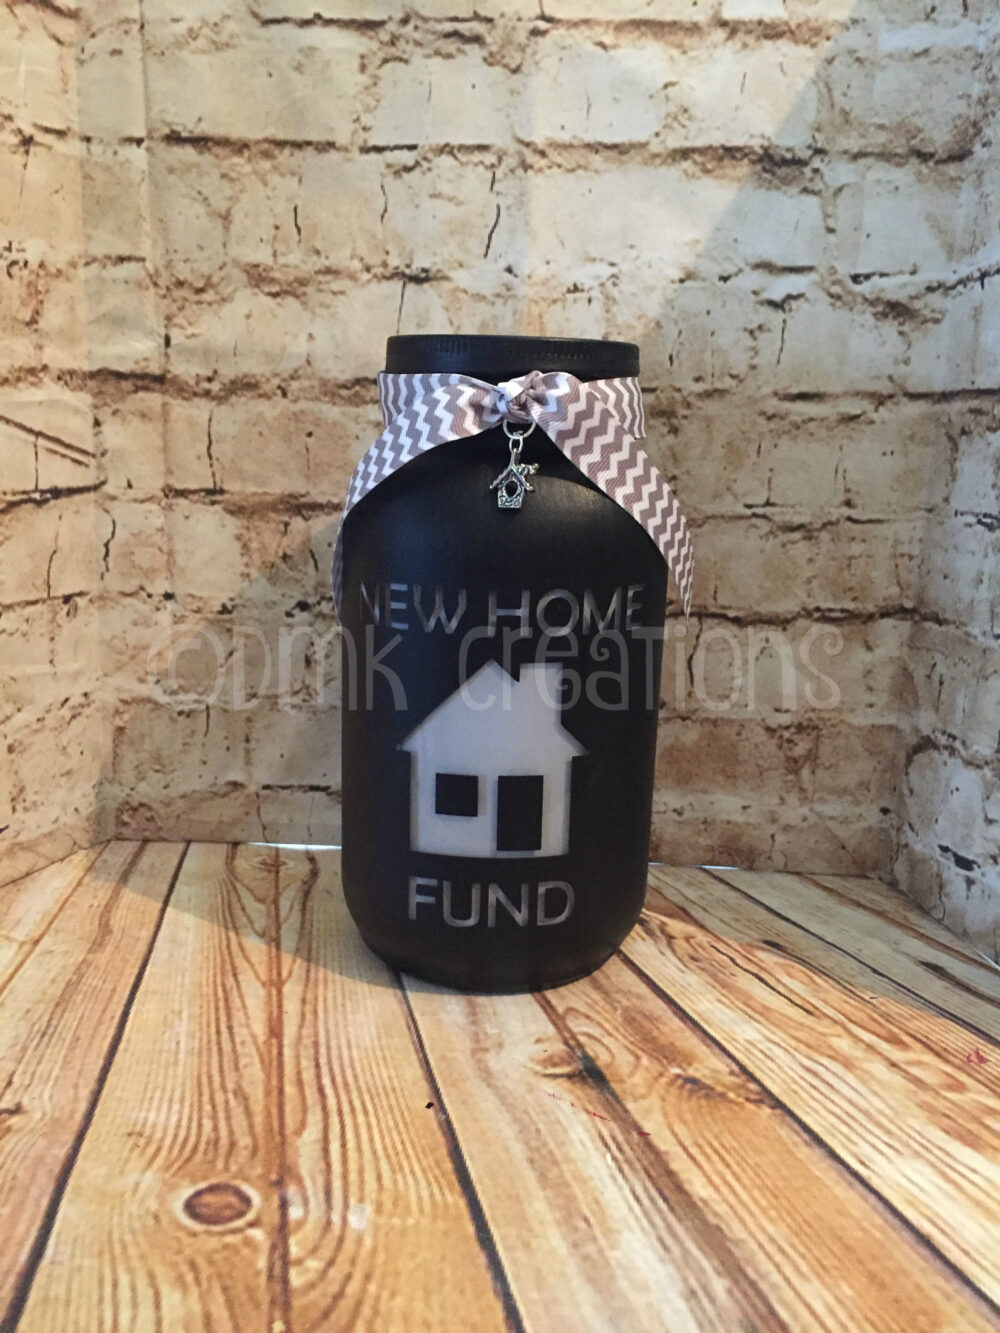 New Home Fund Painted Mason Jar Bank, New Home Fund, Home, Bank, Piggy Painted Mason Jar, Gift, Engagement Fund